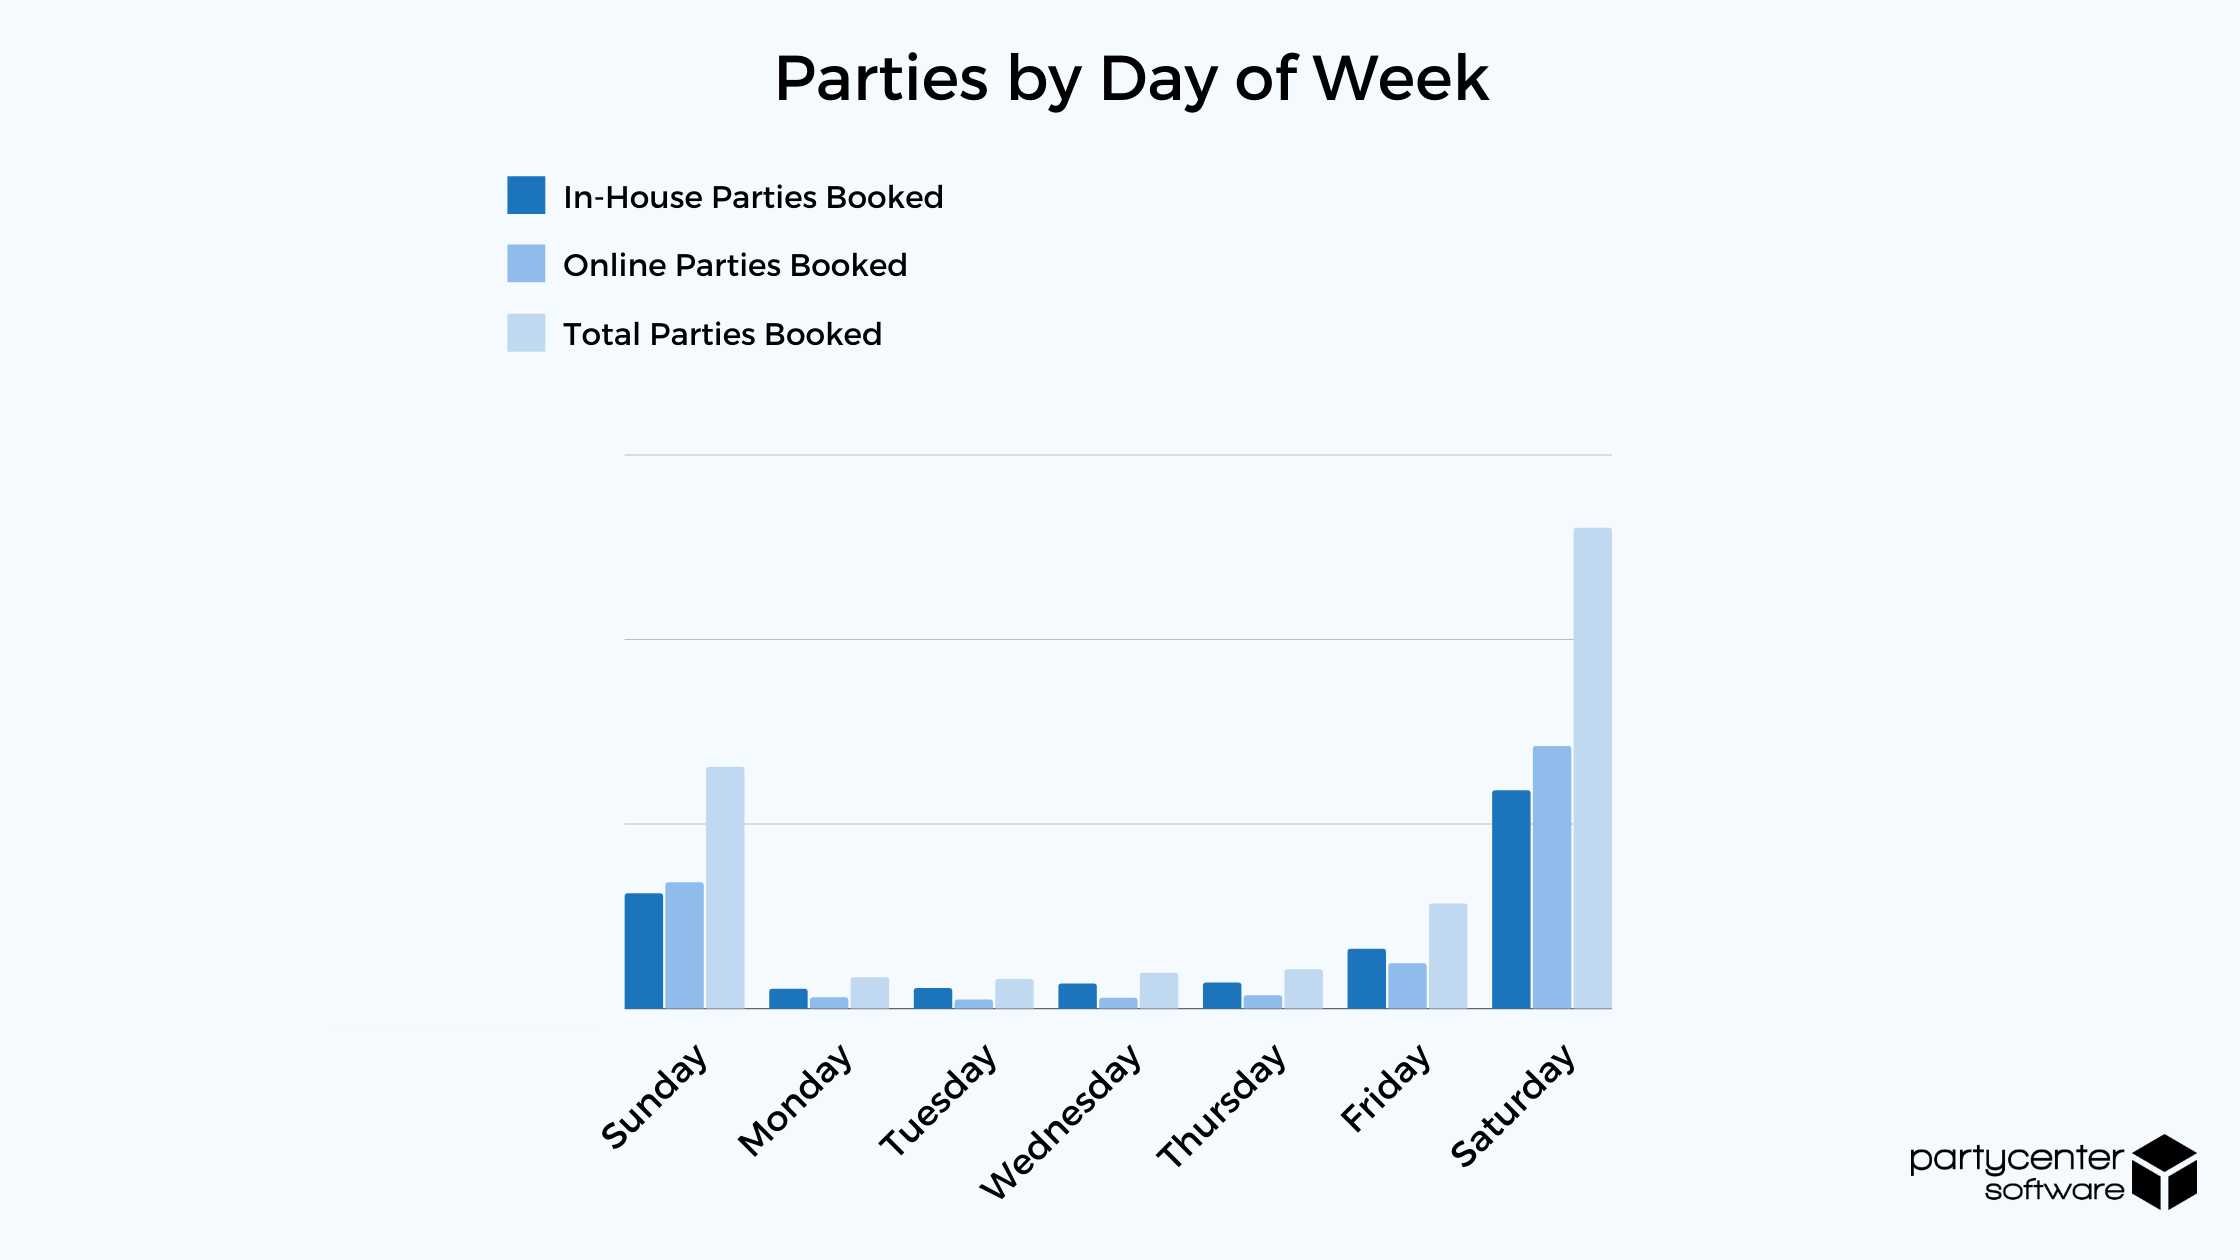 Parties by Day of Week - 2020